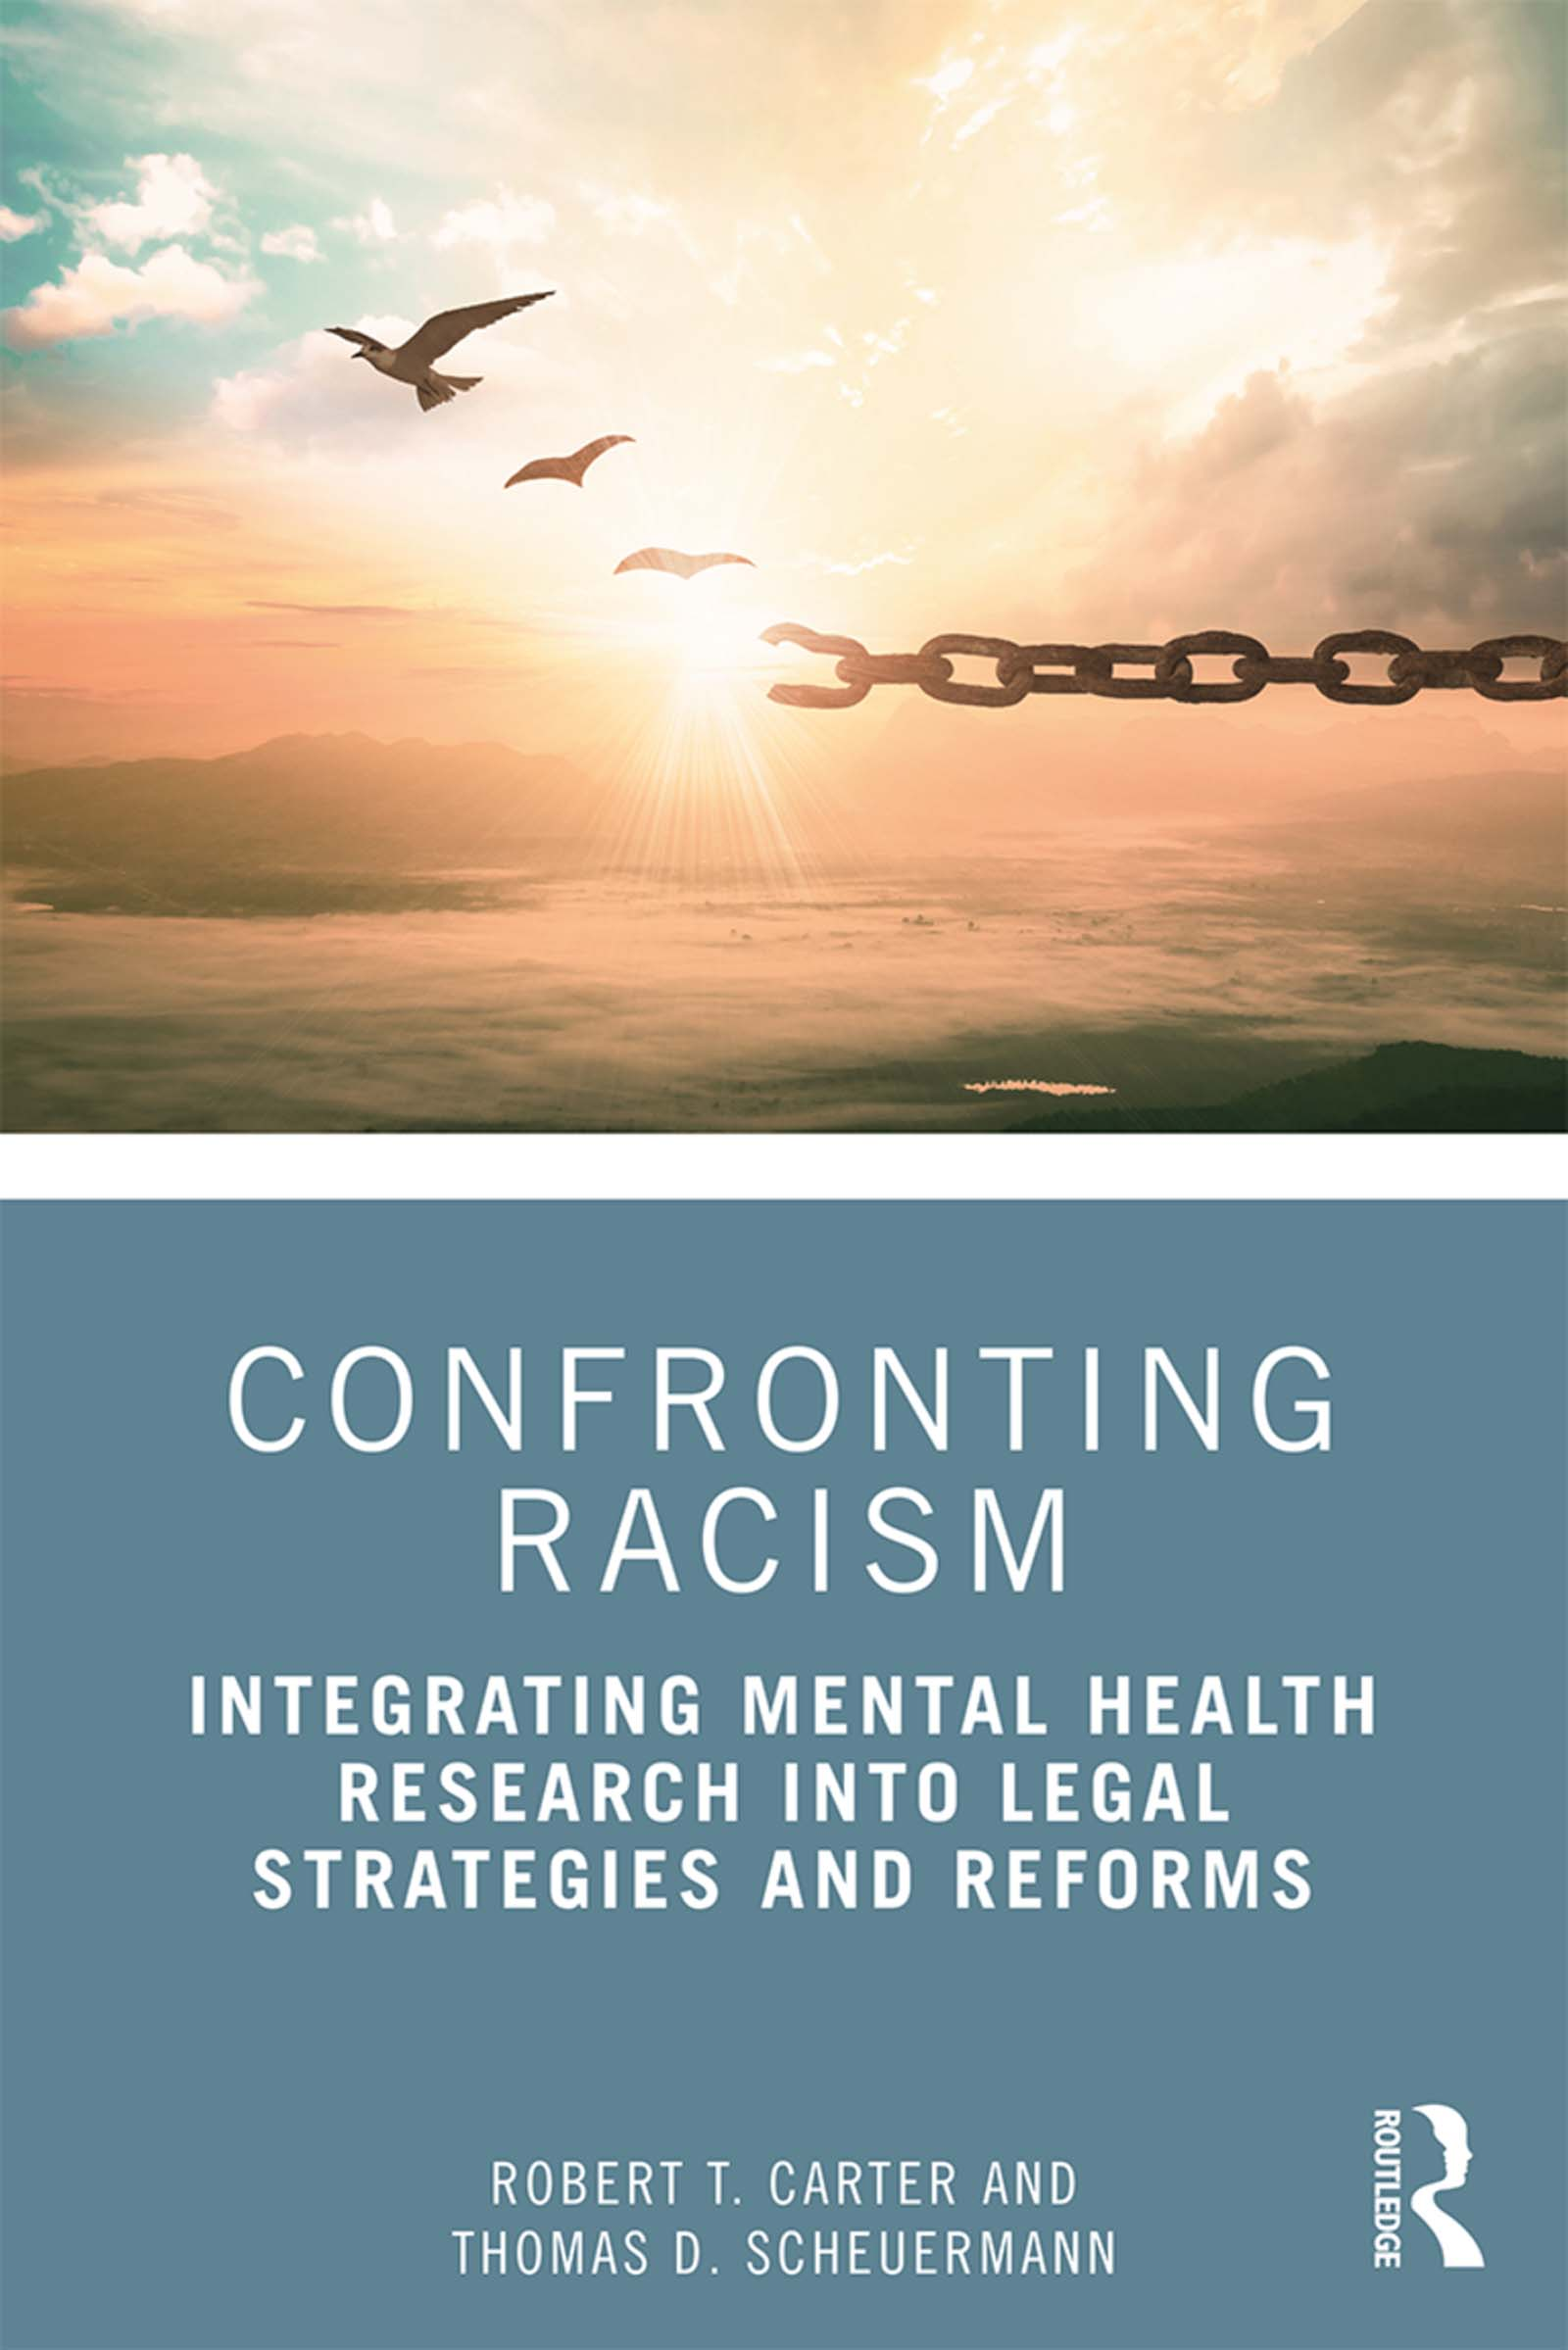 Confronting Racism: Integrating Mental Health Research into Legal Strategies and Reforms book cover